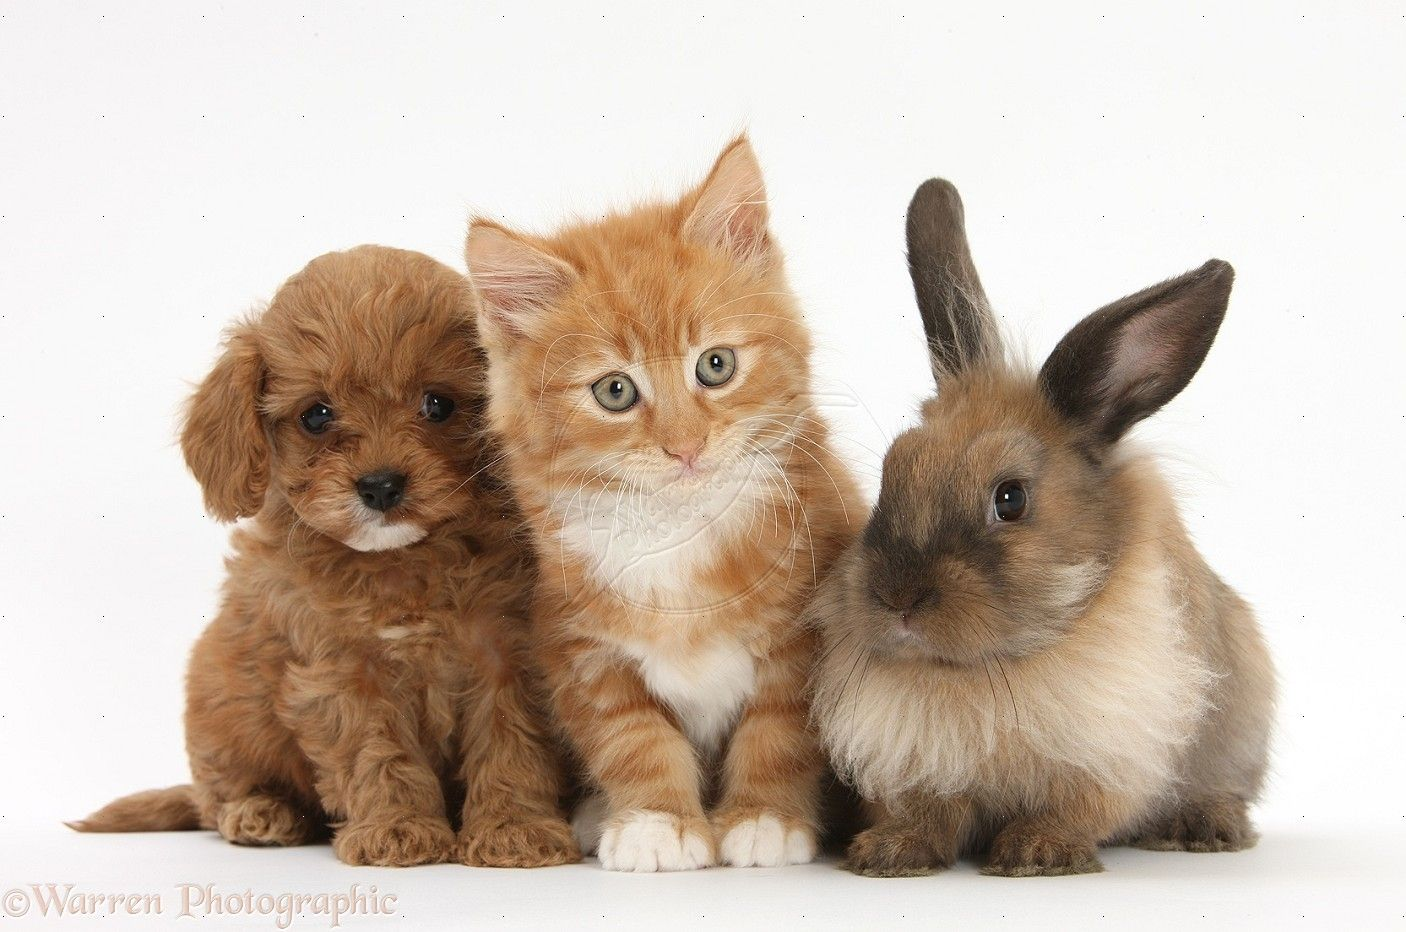 Cool Puppies And Kittens And Bunnies Together And Also Cute Cute Puppies And Kittens Super Cute Kittens Kittens Cutest